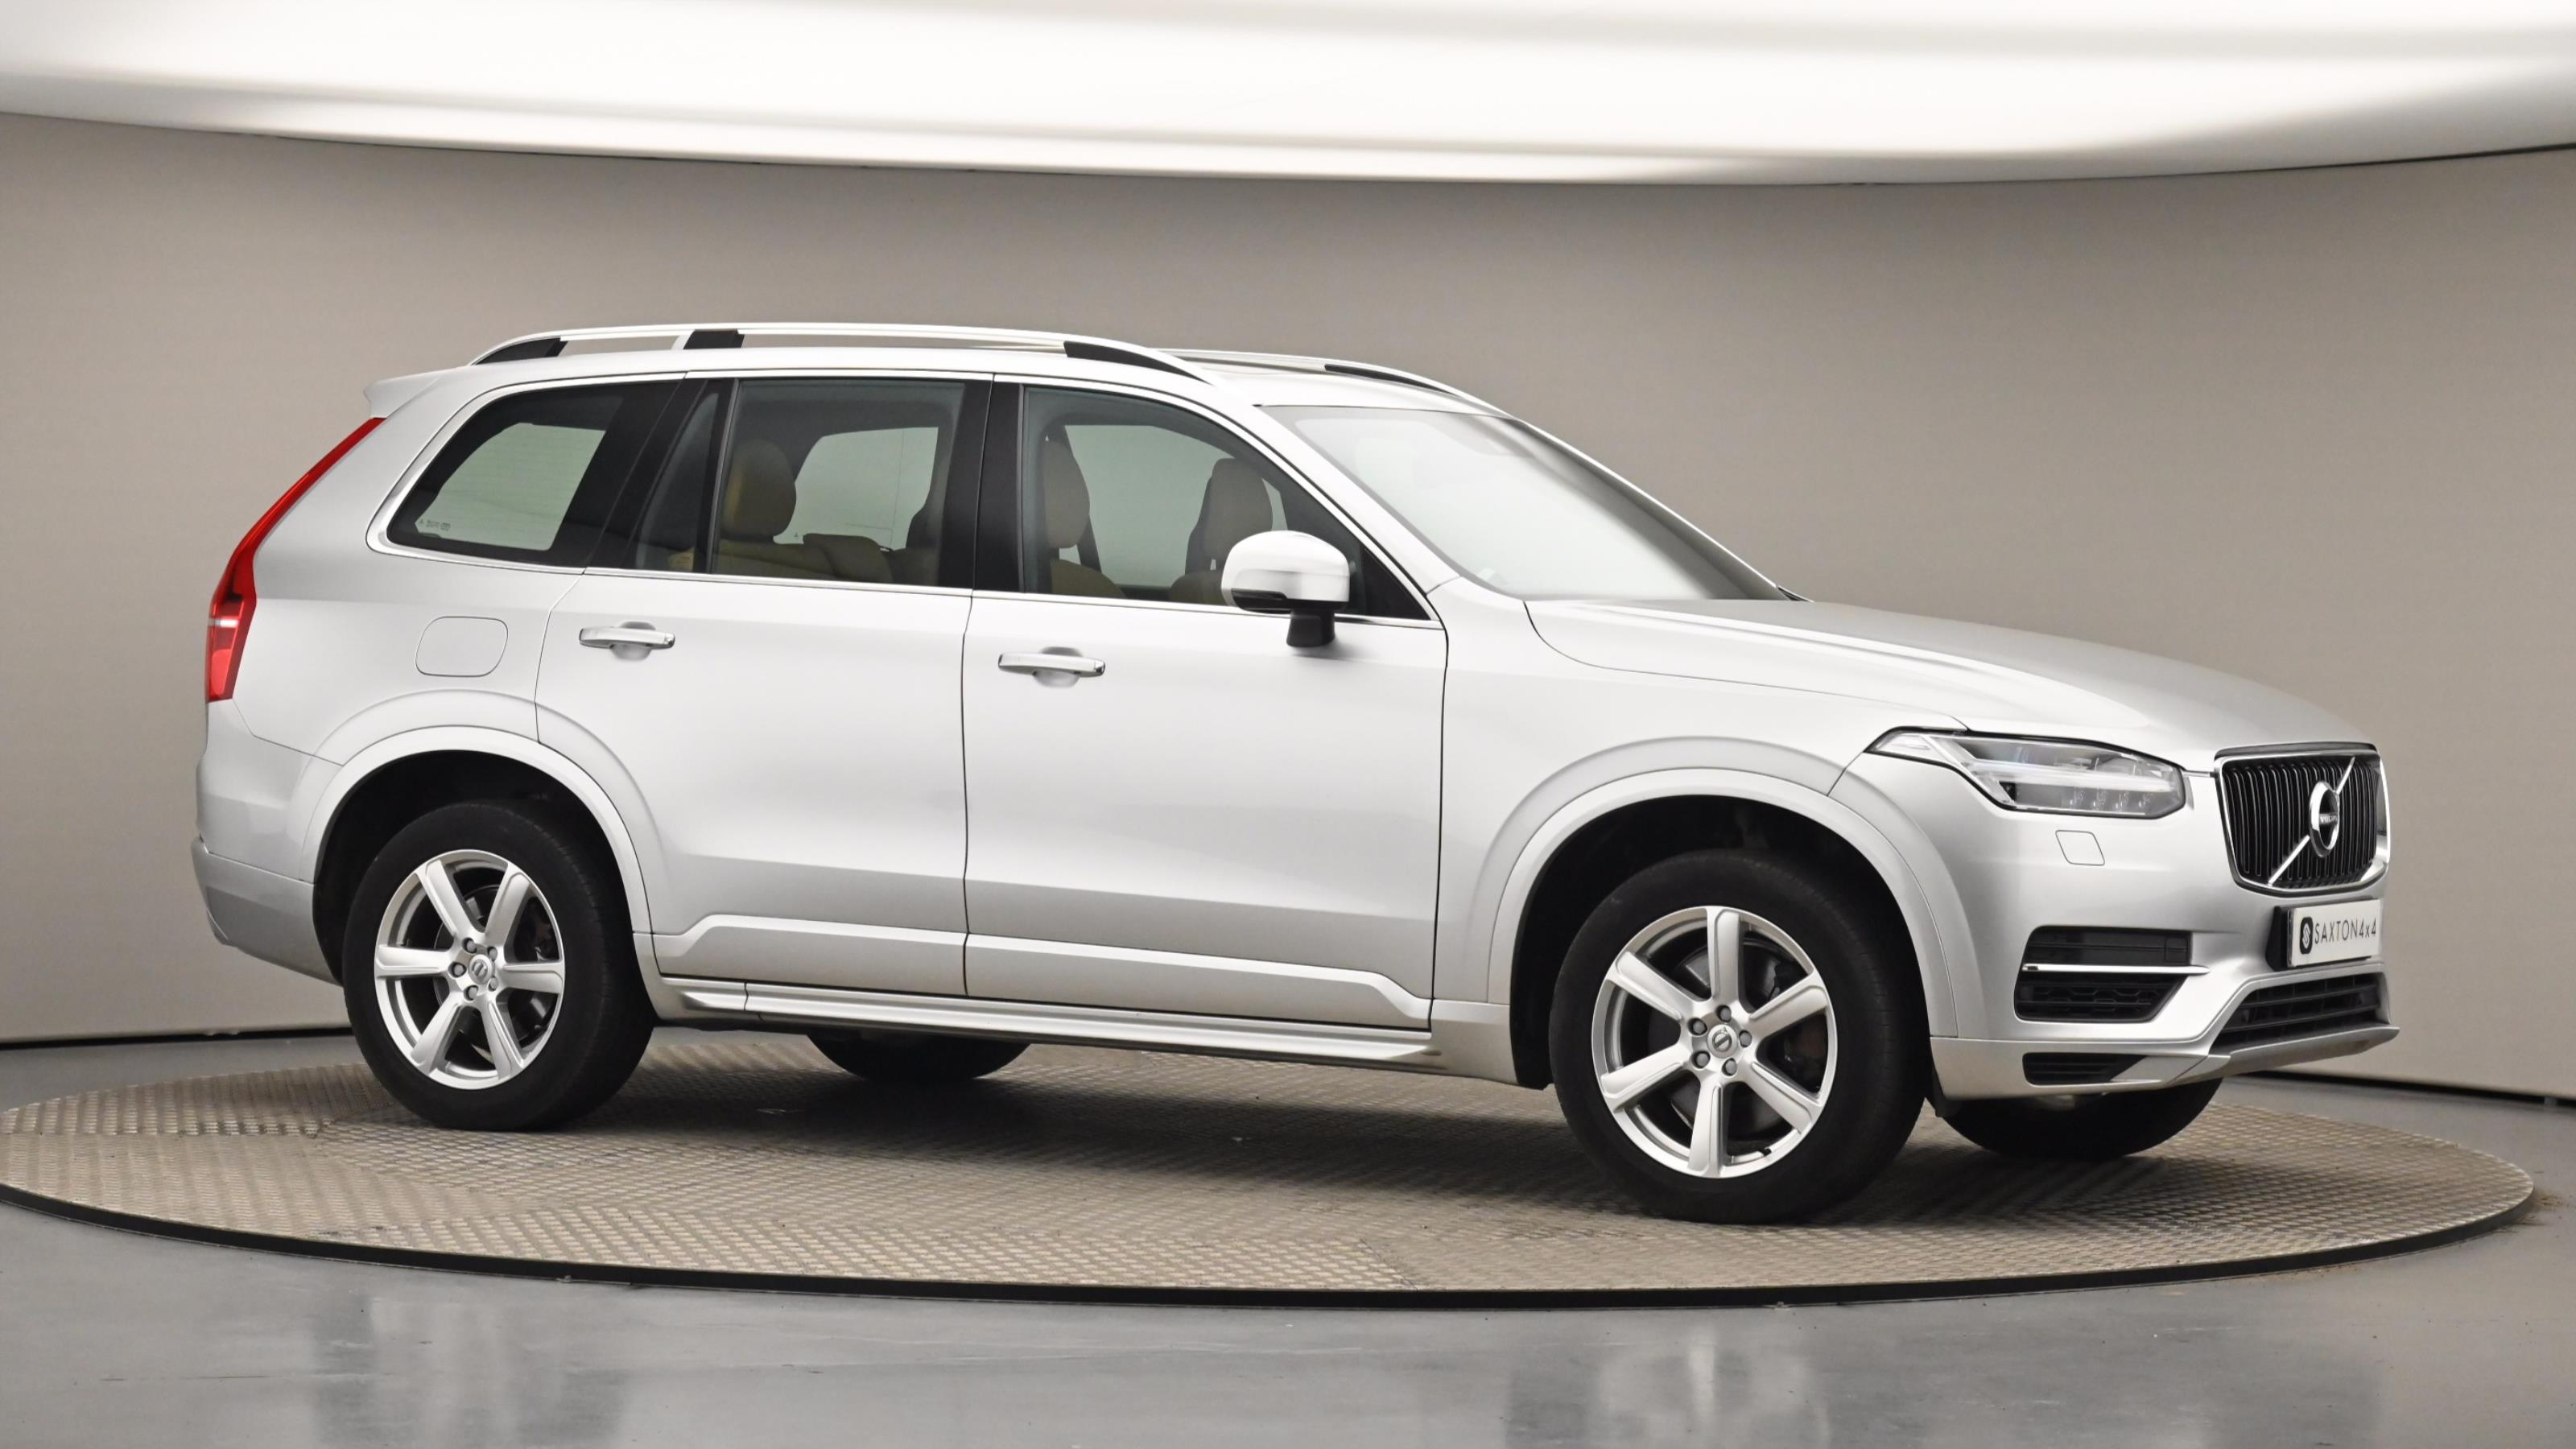 Used 2017 Volvo XC90 2.0 T8 Hybrid Momentum Pro 5dr Geartronic Silver at Saxton4x4